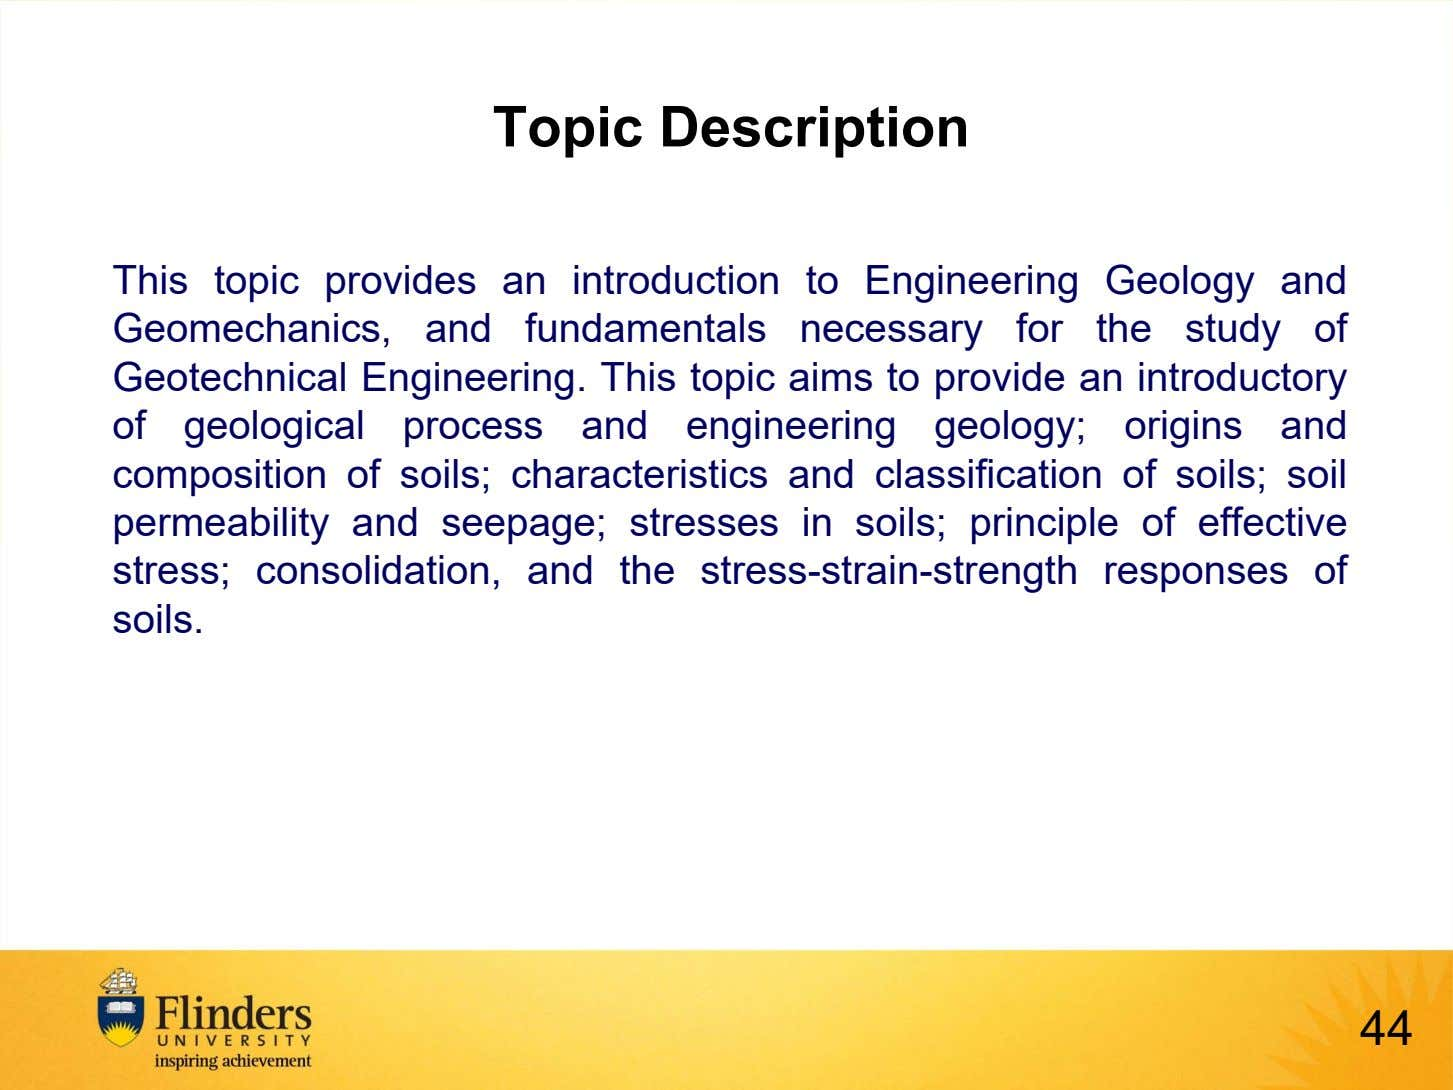 Topic Description This topic provides an introduction to Engineering Geology and Geomechanics, and fundamentals